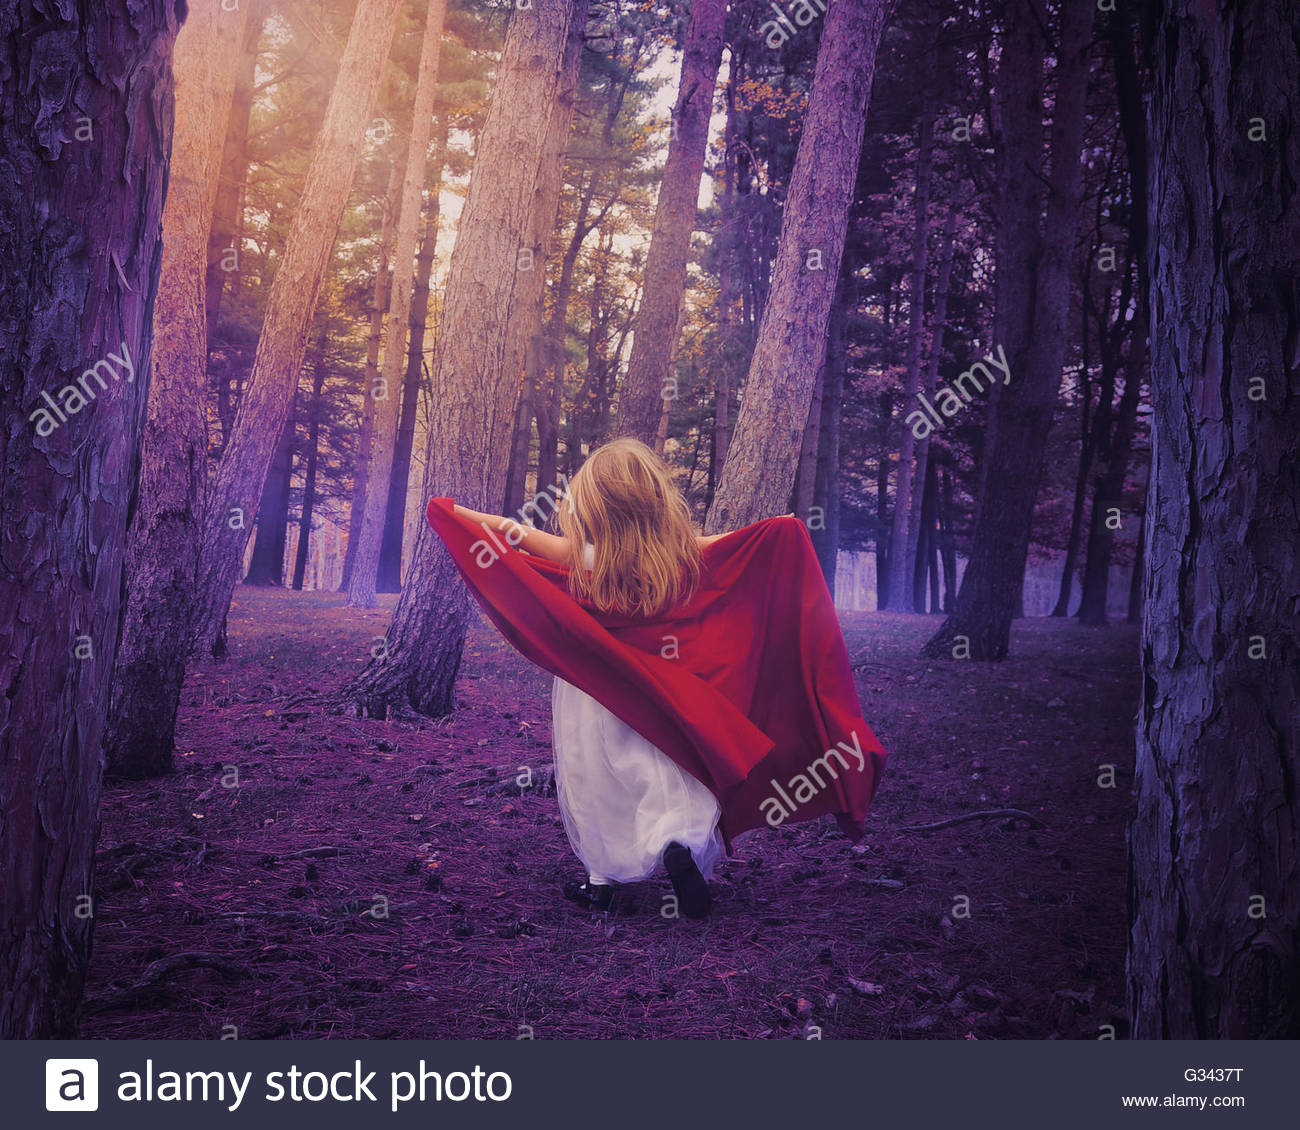 A little girl wearing a white dress and red cape running in the woods with for a surreal fairytale or adventure - Stock Image